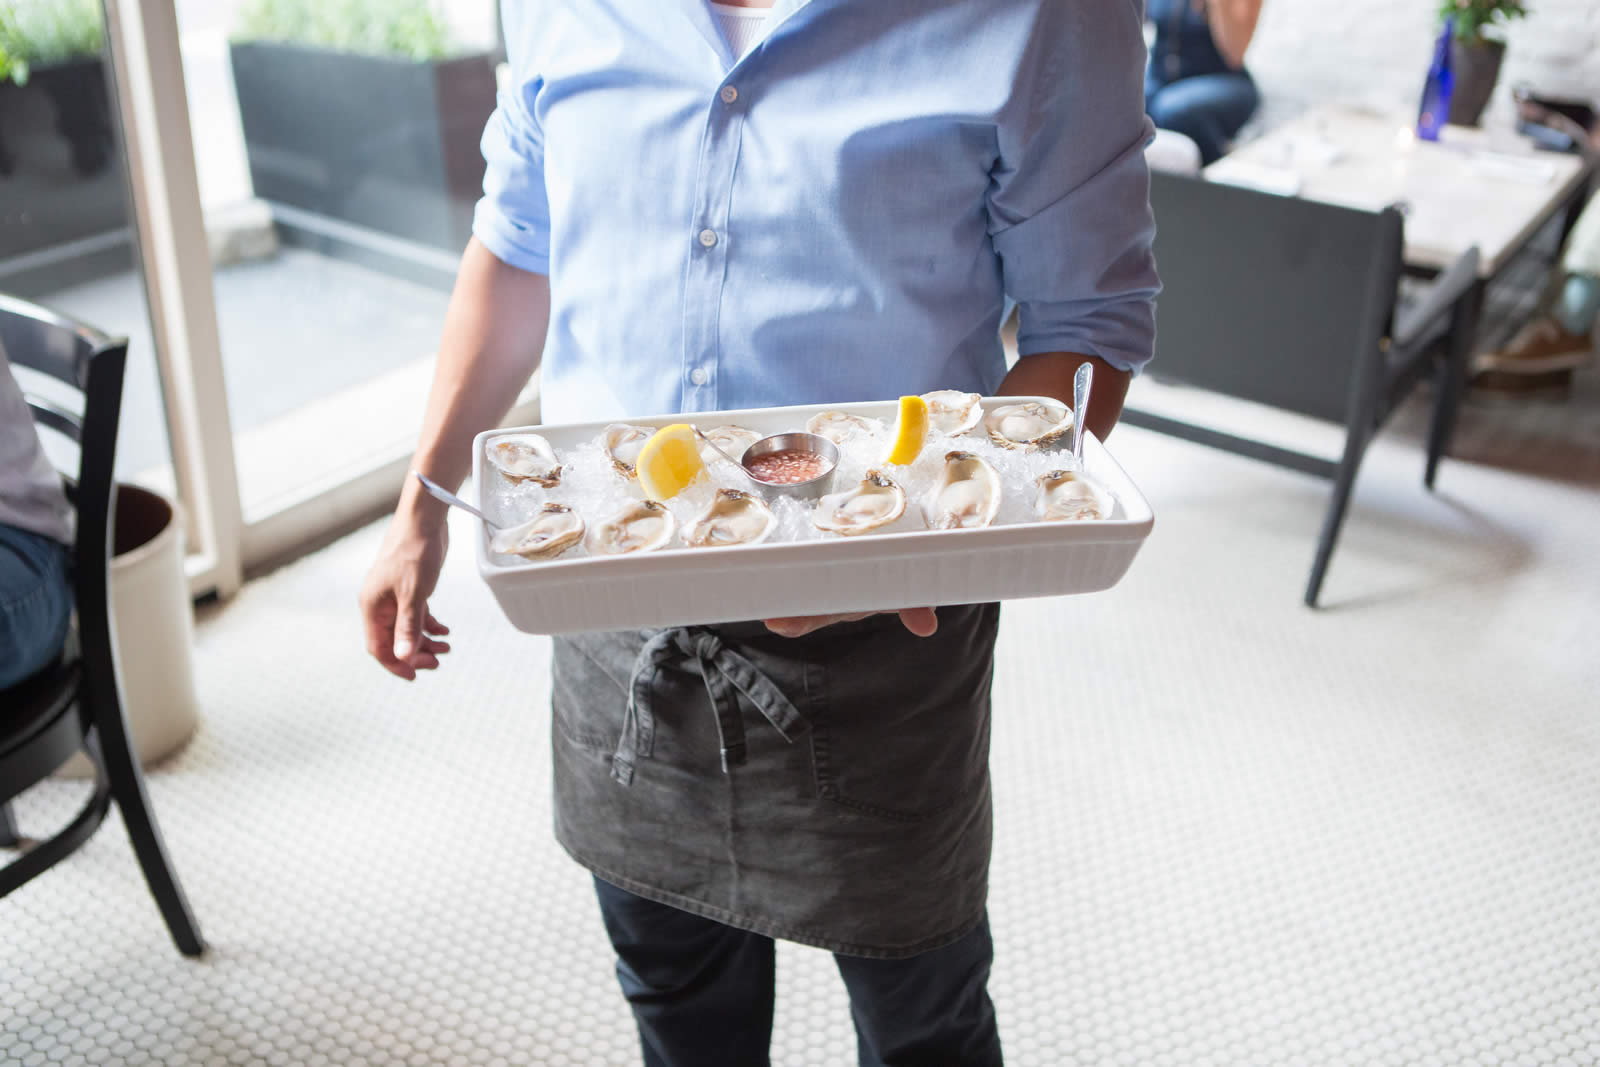 A server holding an ice-filled tray of fresh oysters.